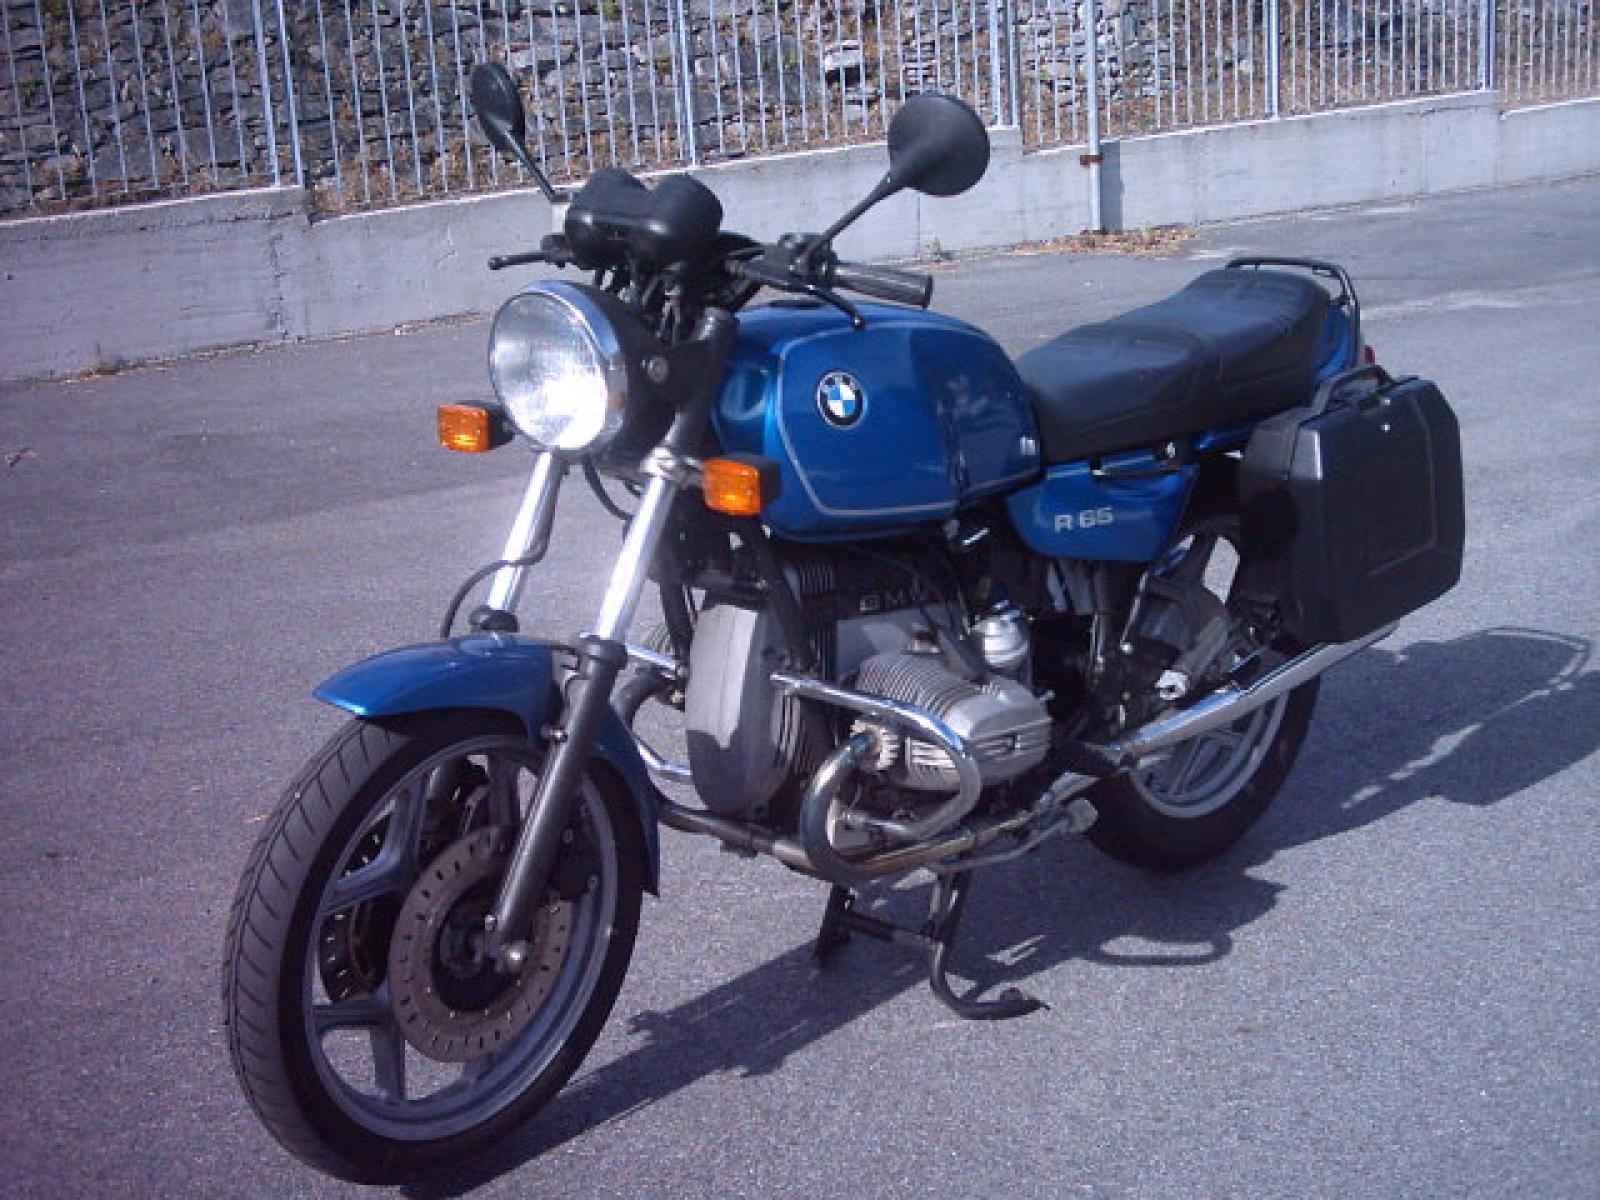 BMW R65 (reduced effect) images #14536